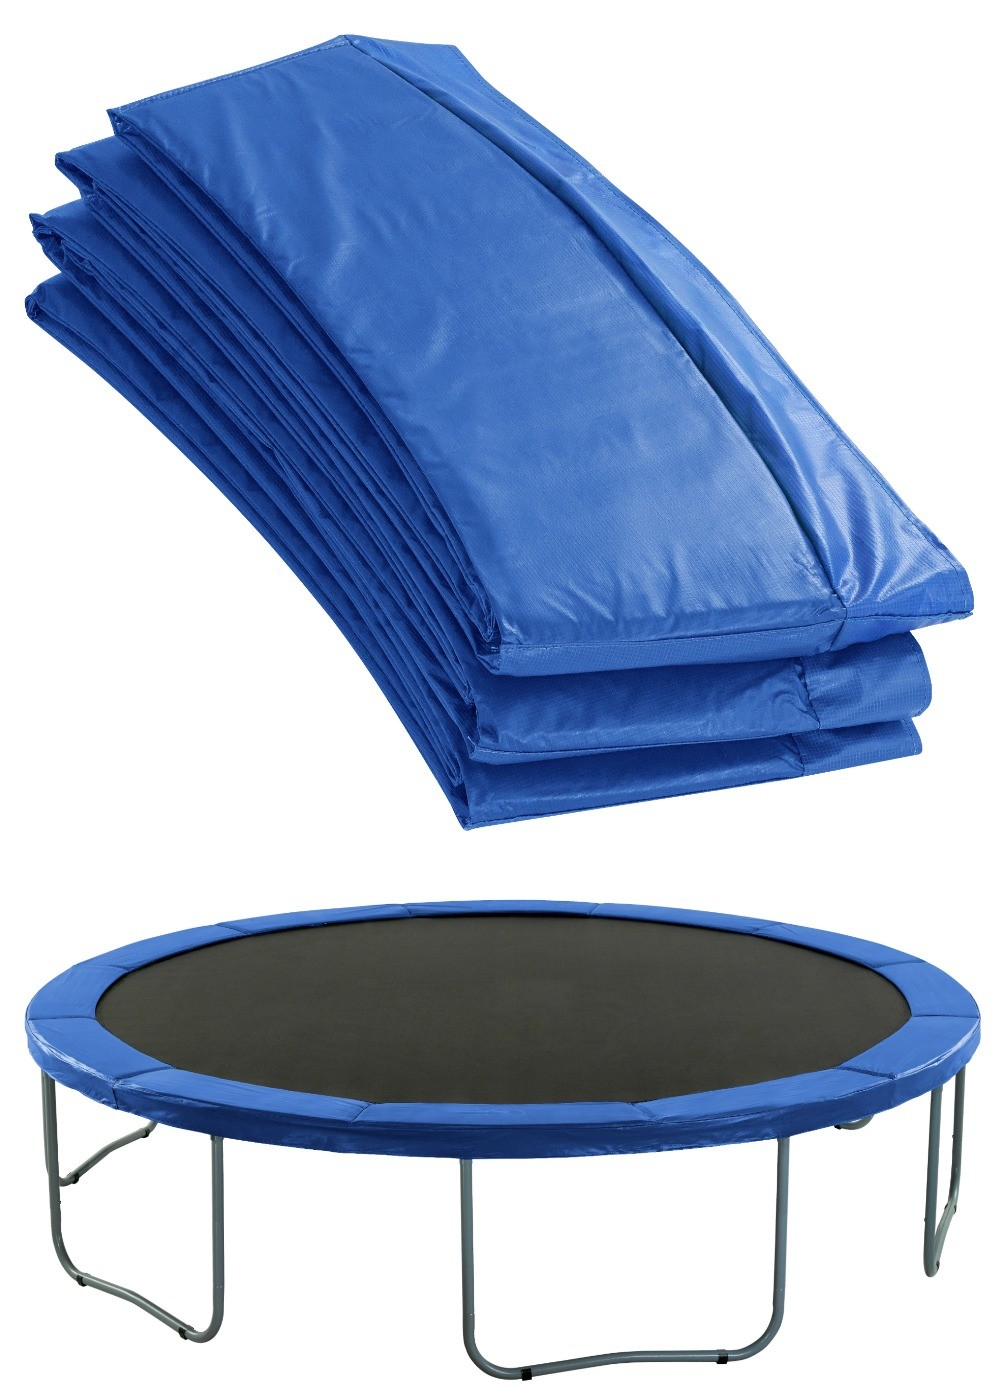 Super Trampoline Replacement Safety Pad (Spring Cover) Fits for 7.5 FT. Round Frames - Blue